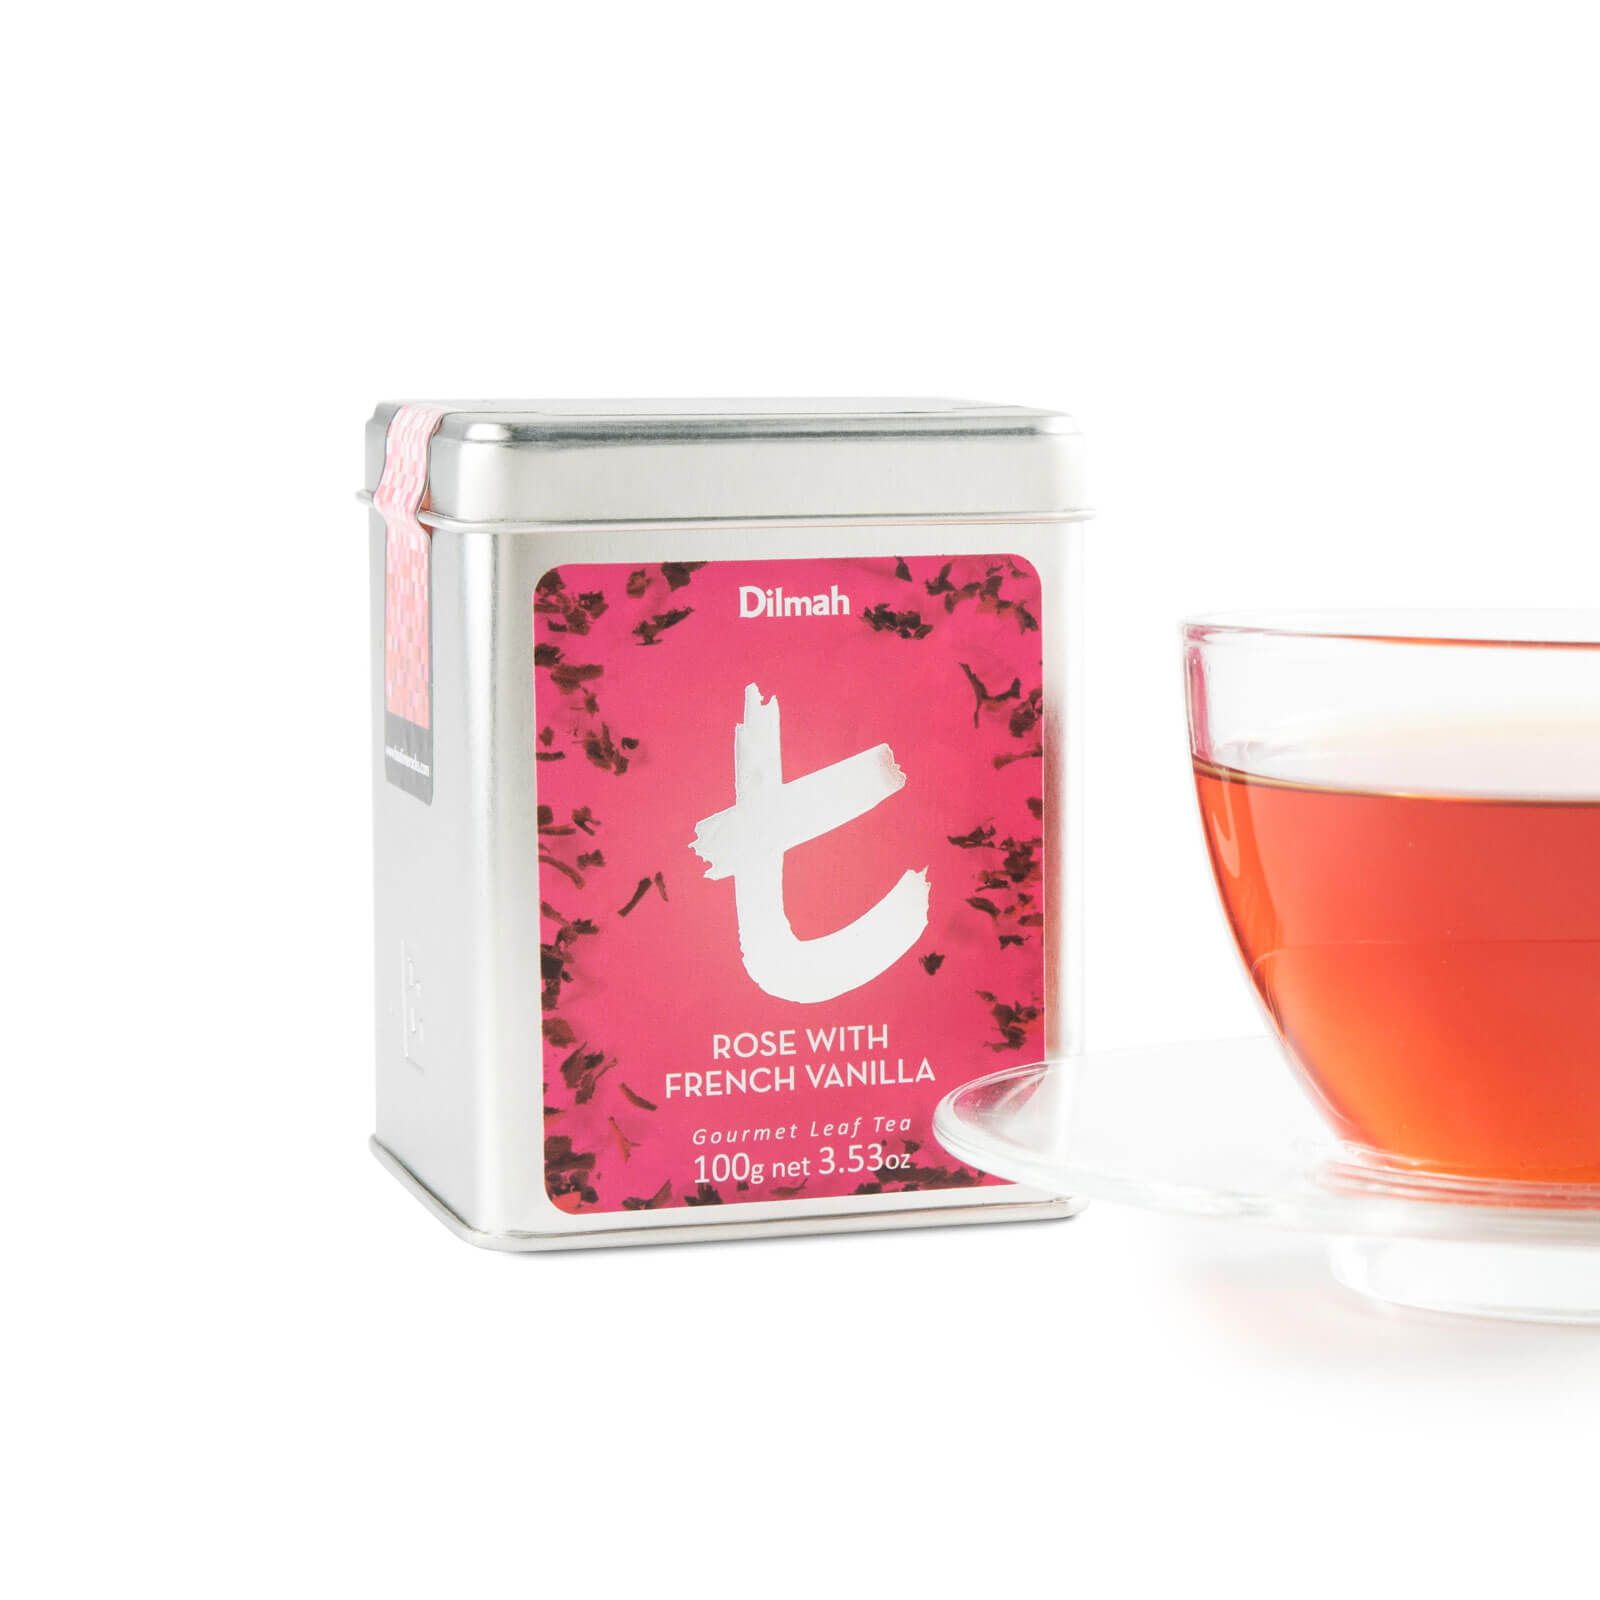 Dilmah rose and french vanilla loose leaf 100g dando dilmah rose and french vanilla loose leaf 100g izmirmasajfo